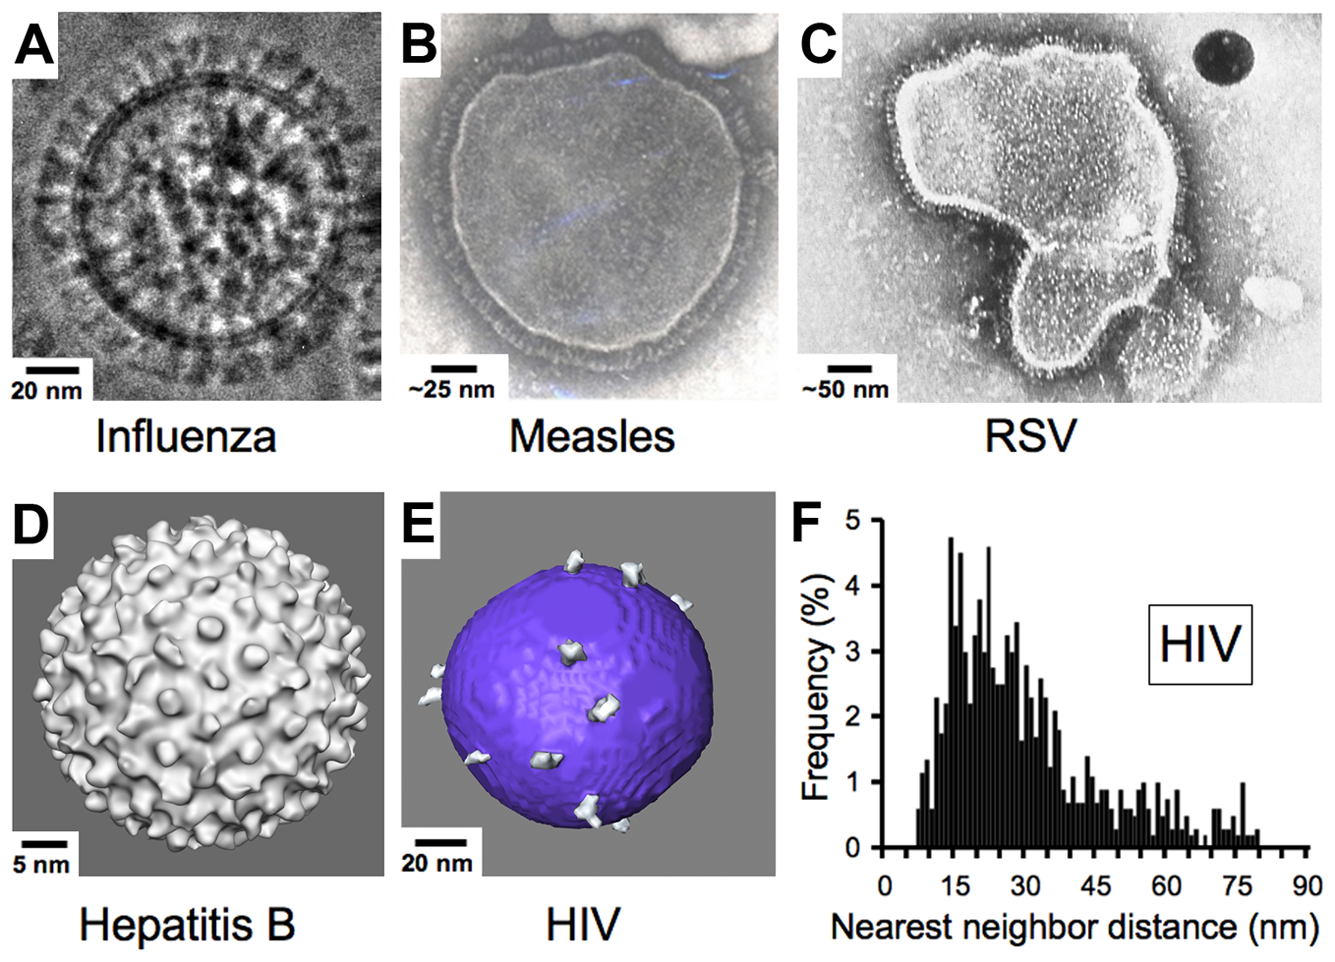 Comparison of enveloped viruses and nearest neighbor distances for HIV envelope spikes.